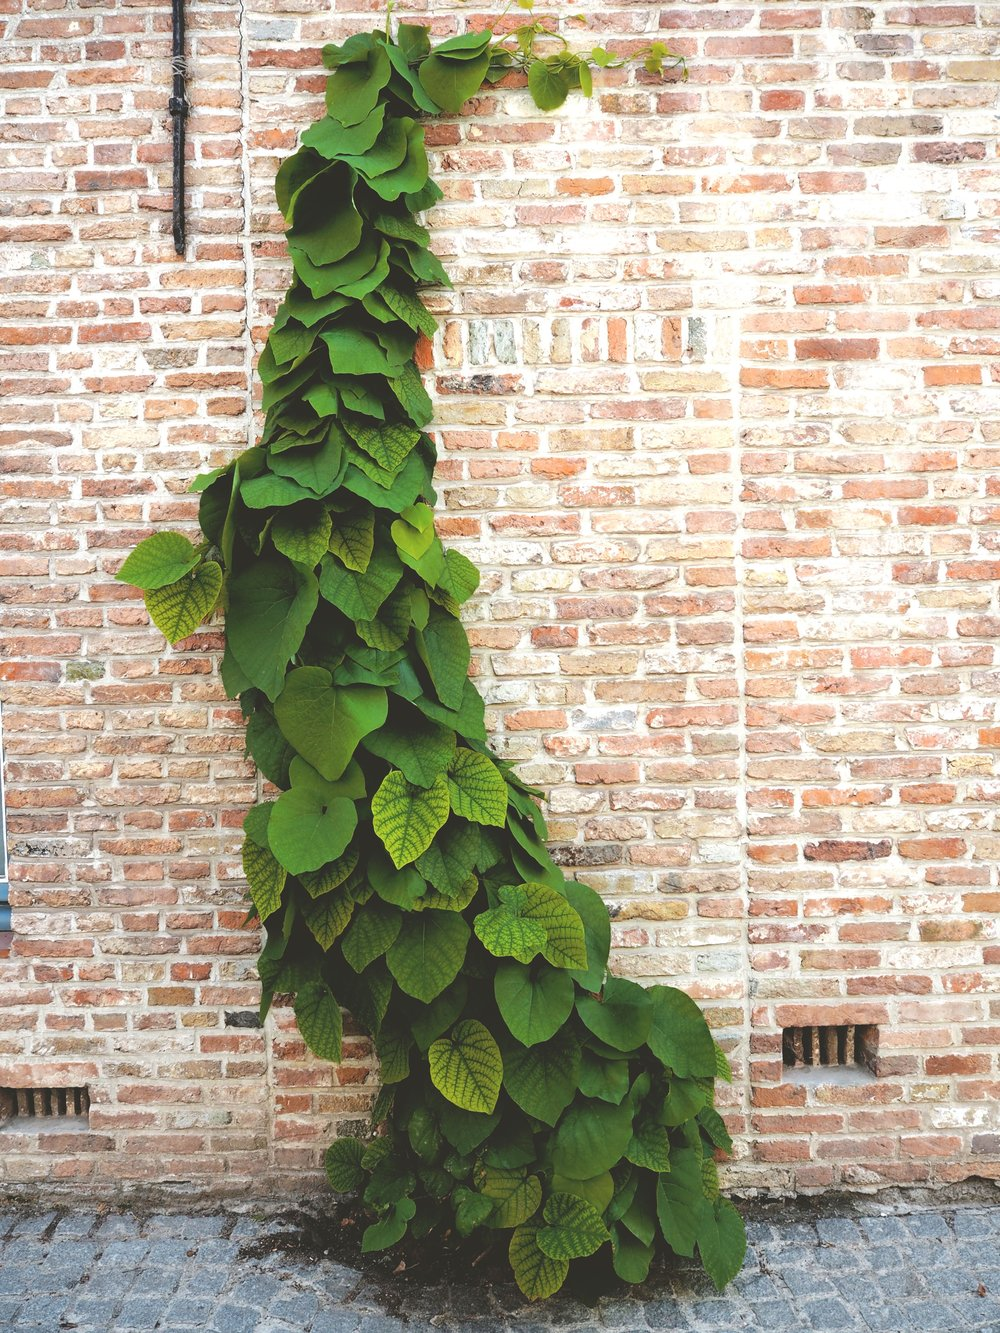 Just a nice Bruges vine photo so you aren't overwhelmed by how large the vertical photos get in this blog.